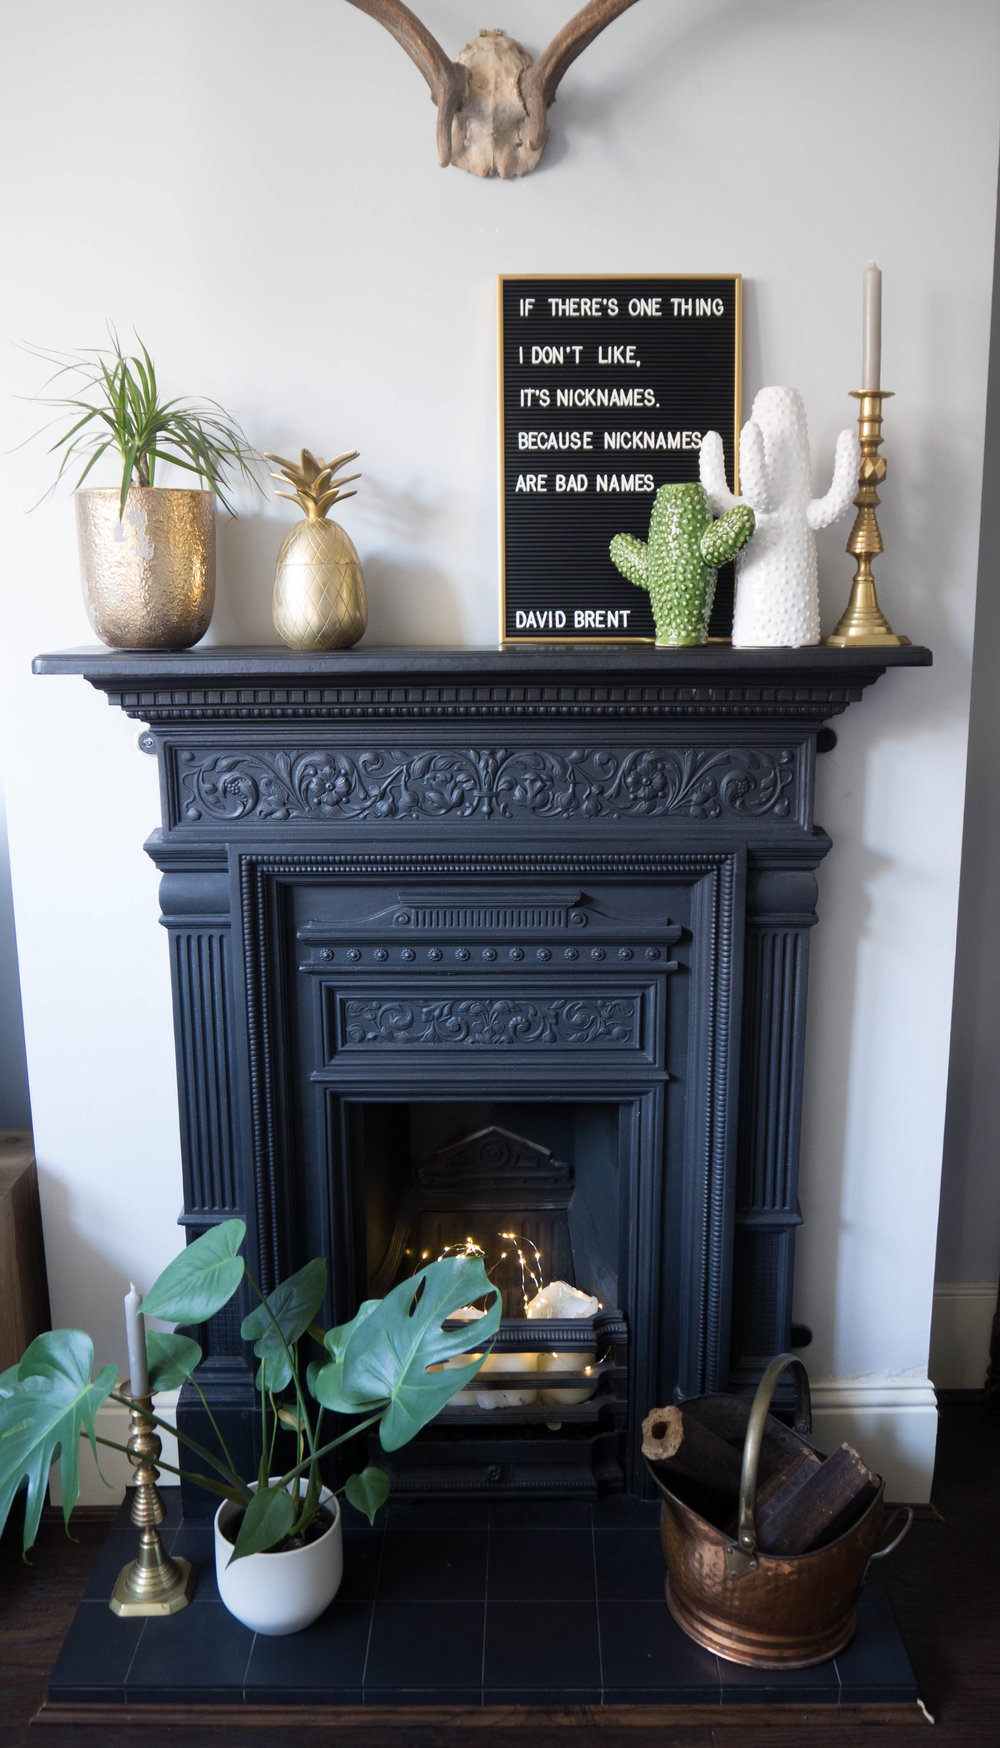 My fireplace mantle with mesage board, brass pineapple and ceramic cactus vases.